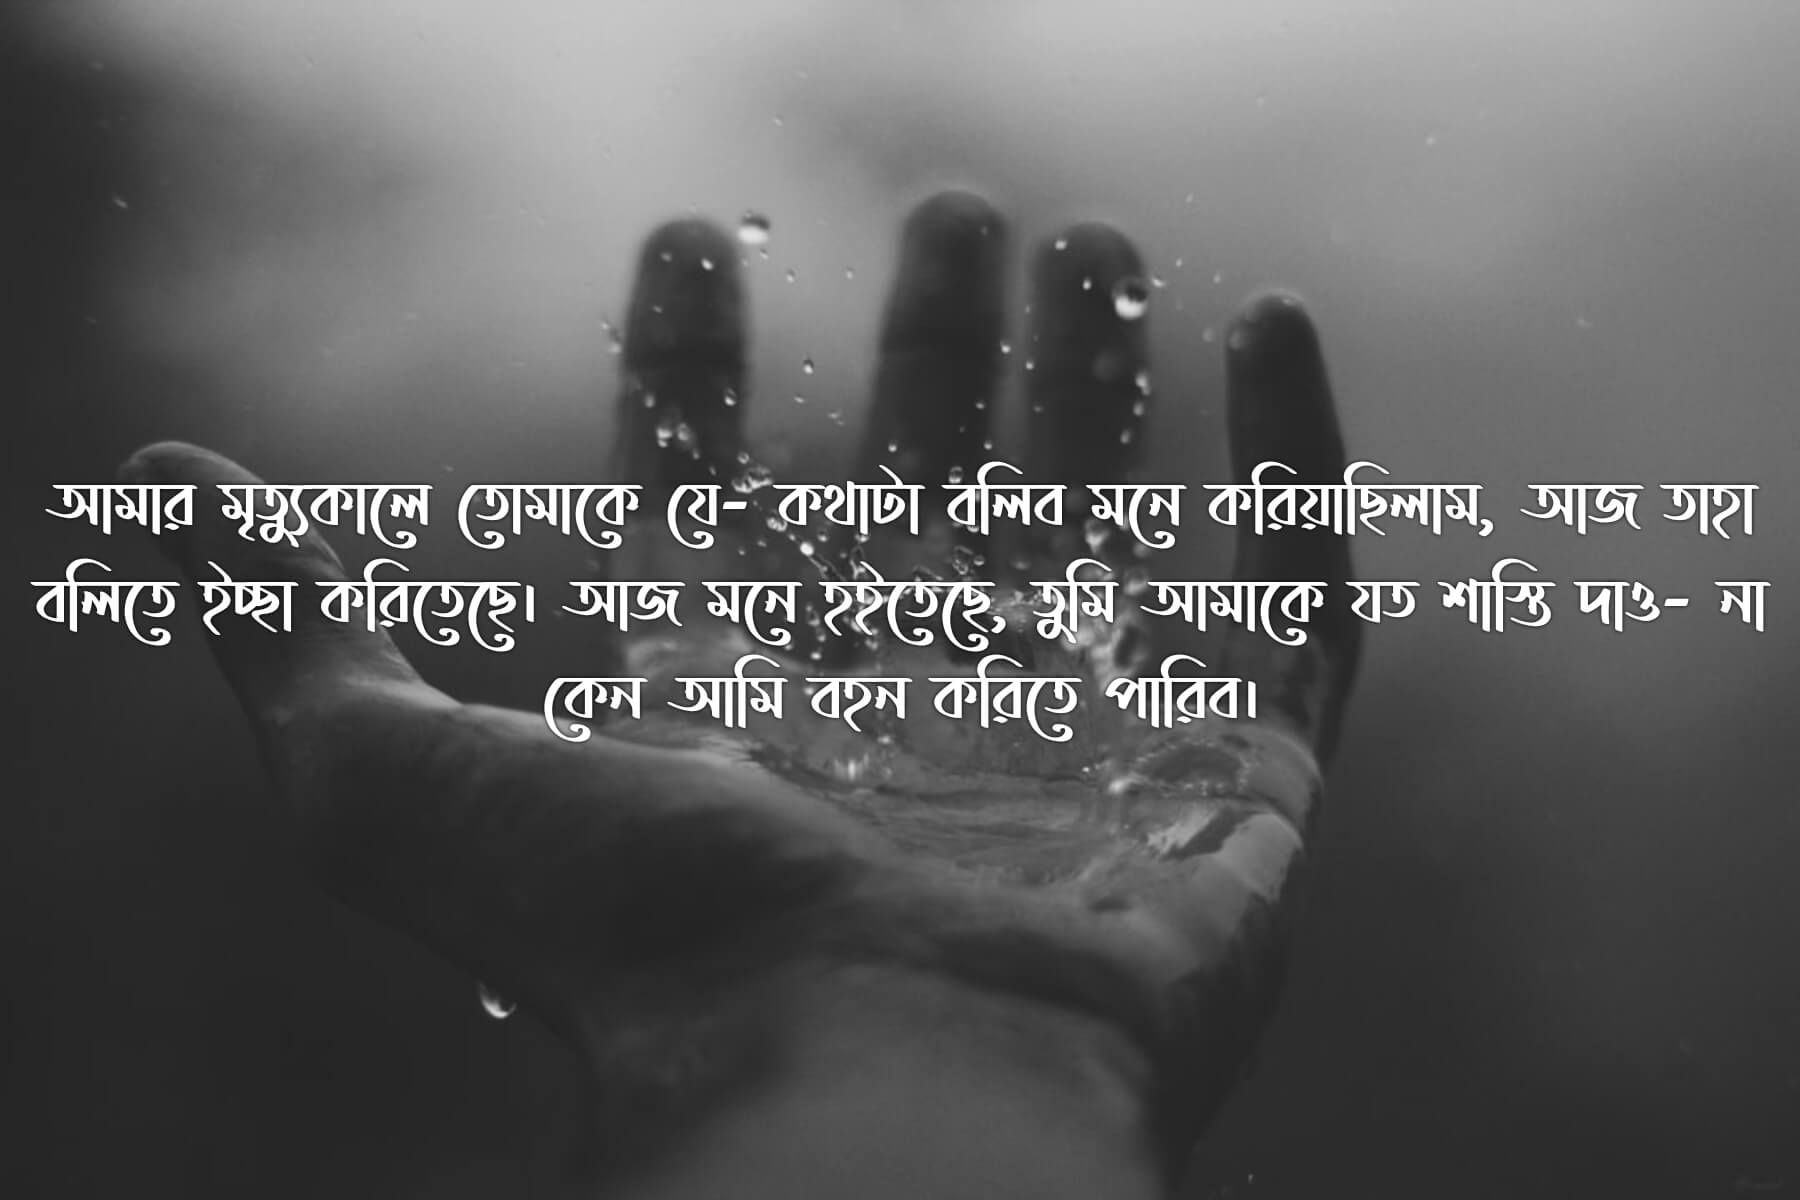 bengali-captions-of-rabindranath